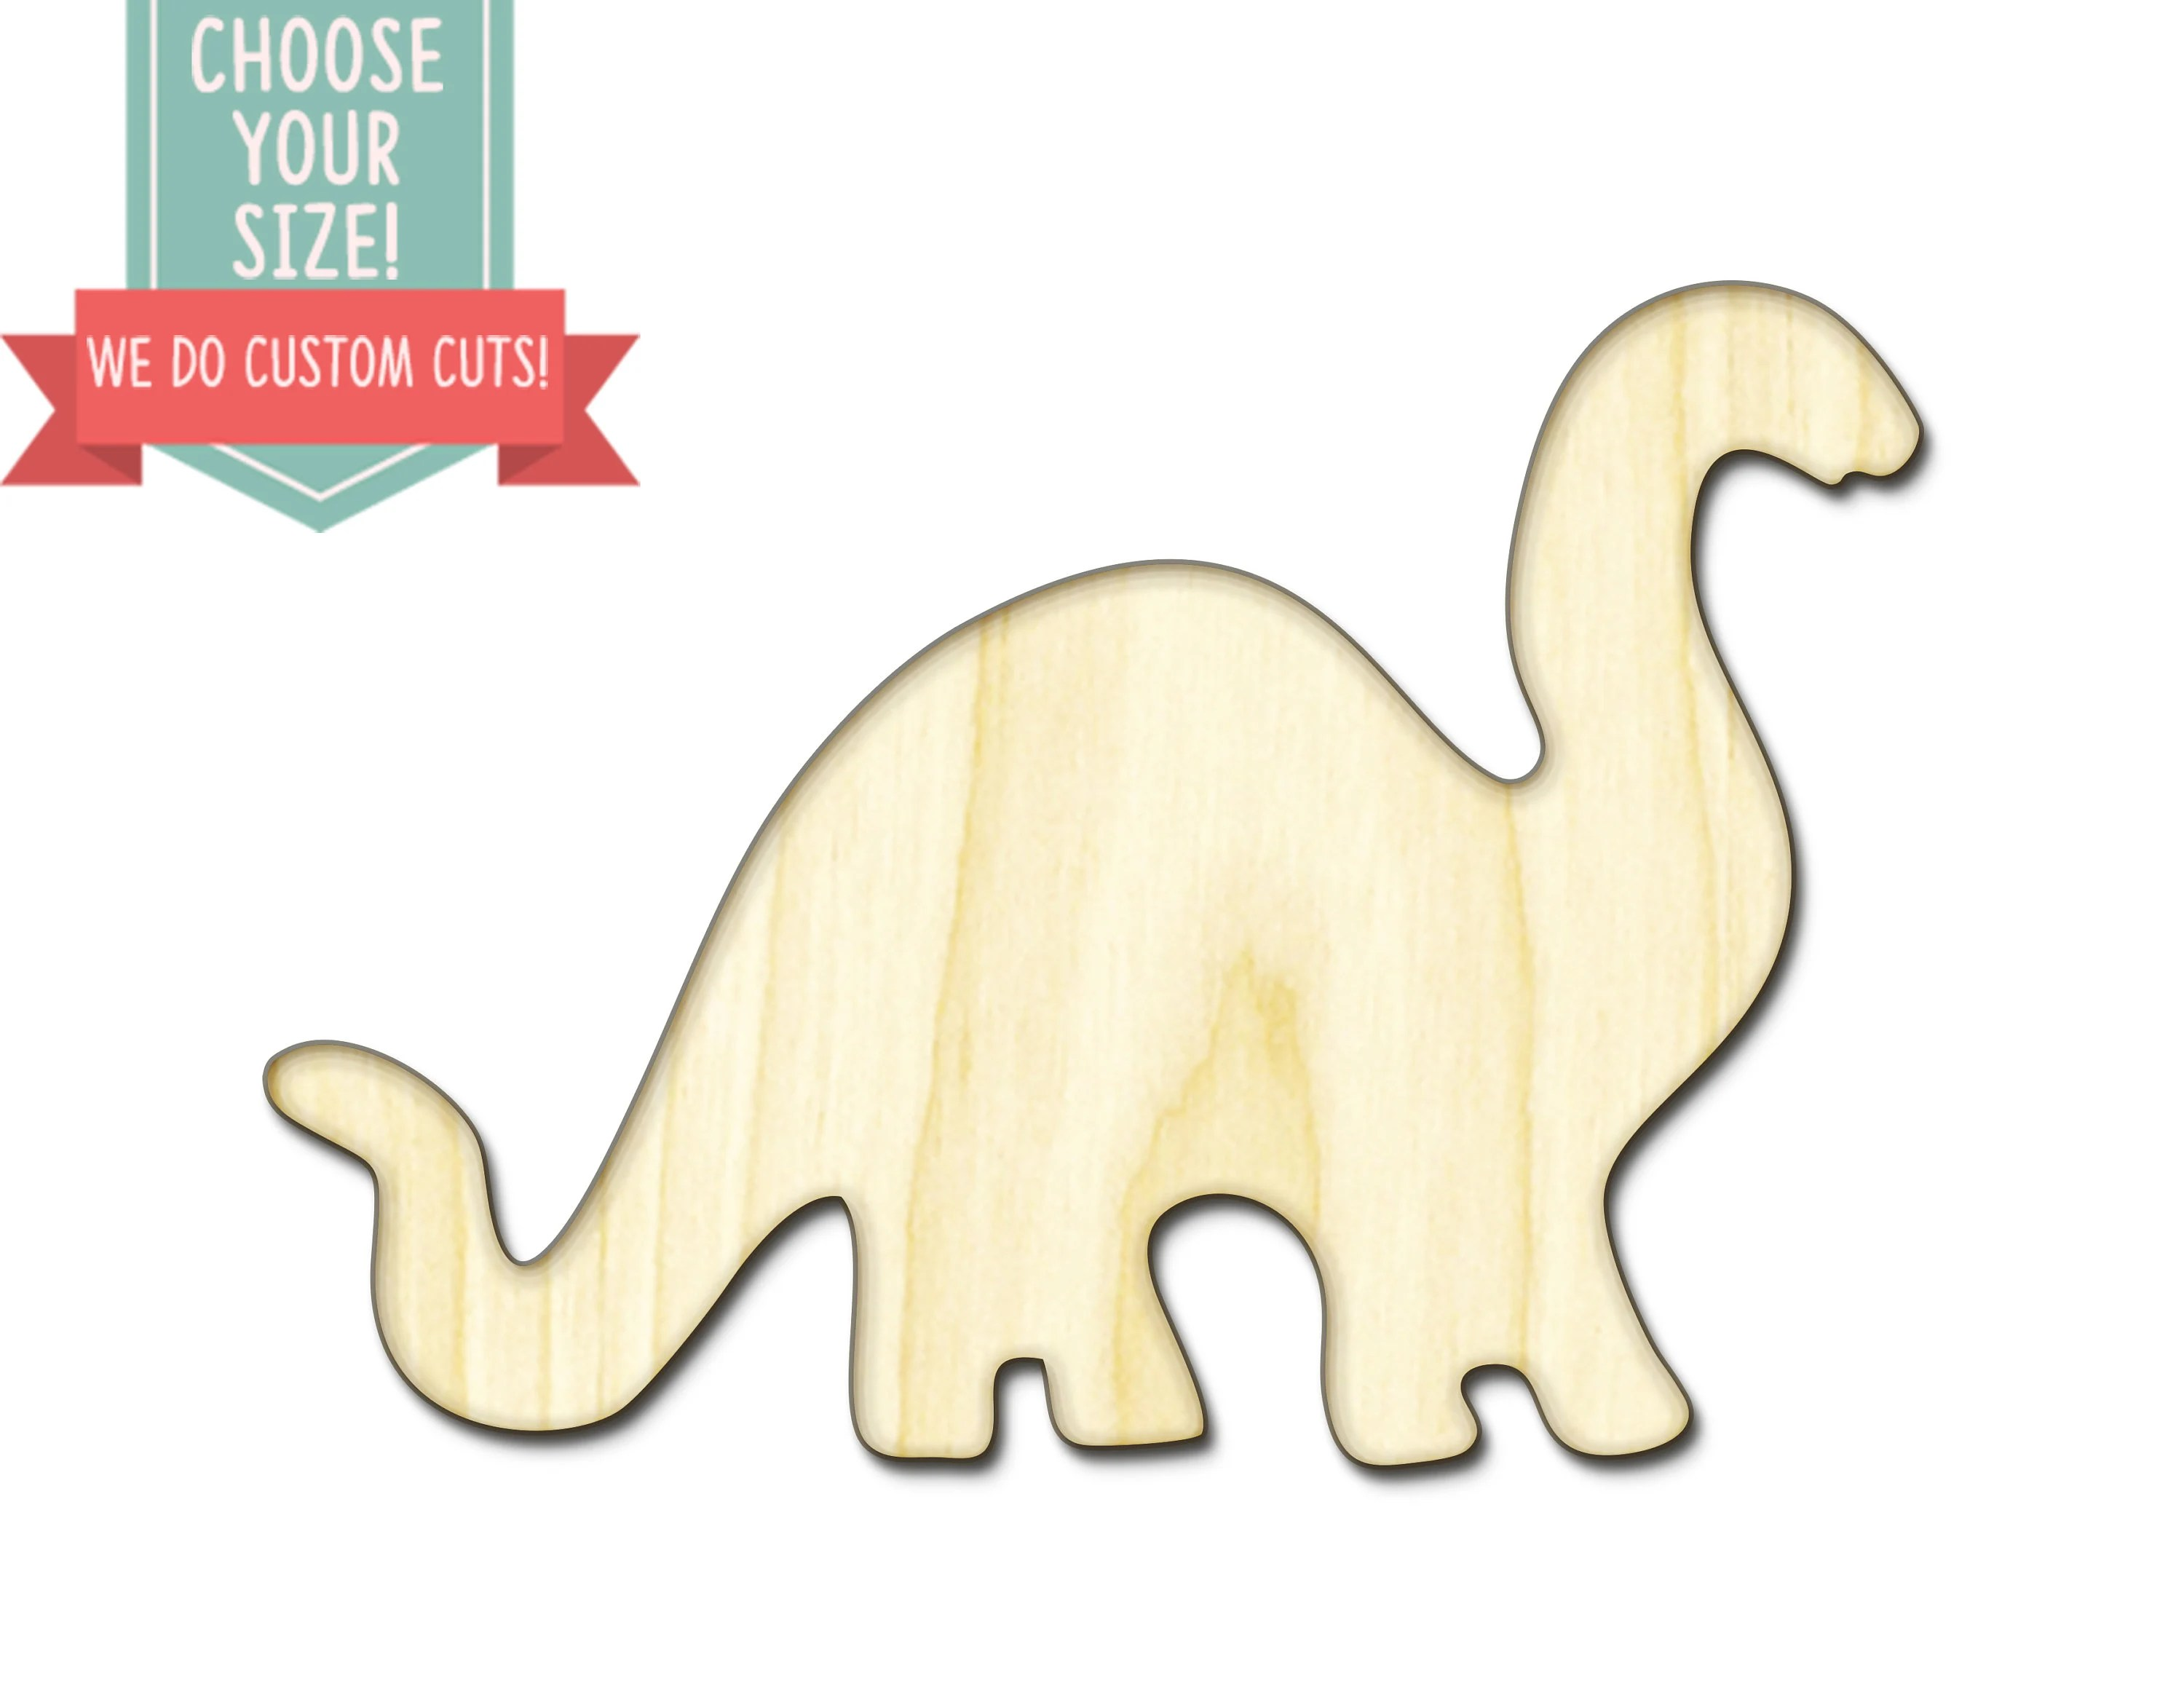 Dinosaur Wood Cut Out Custom Choose Your Size Laser Cut